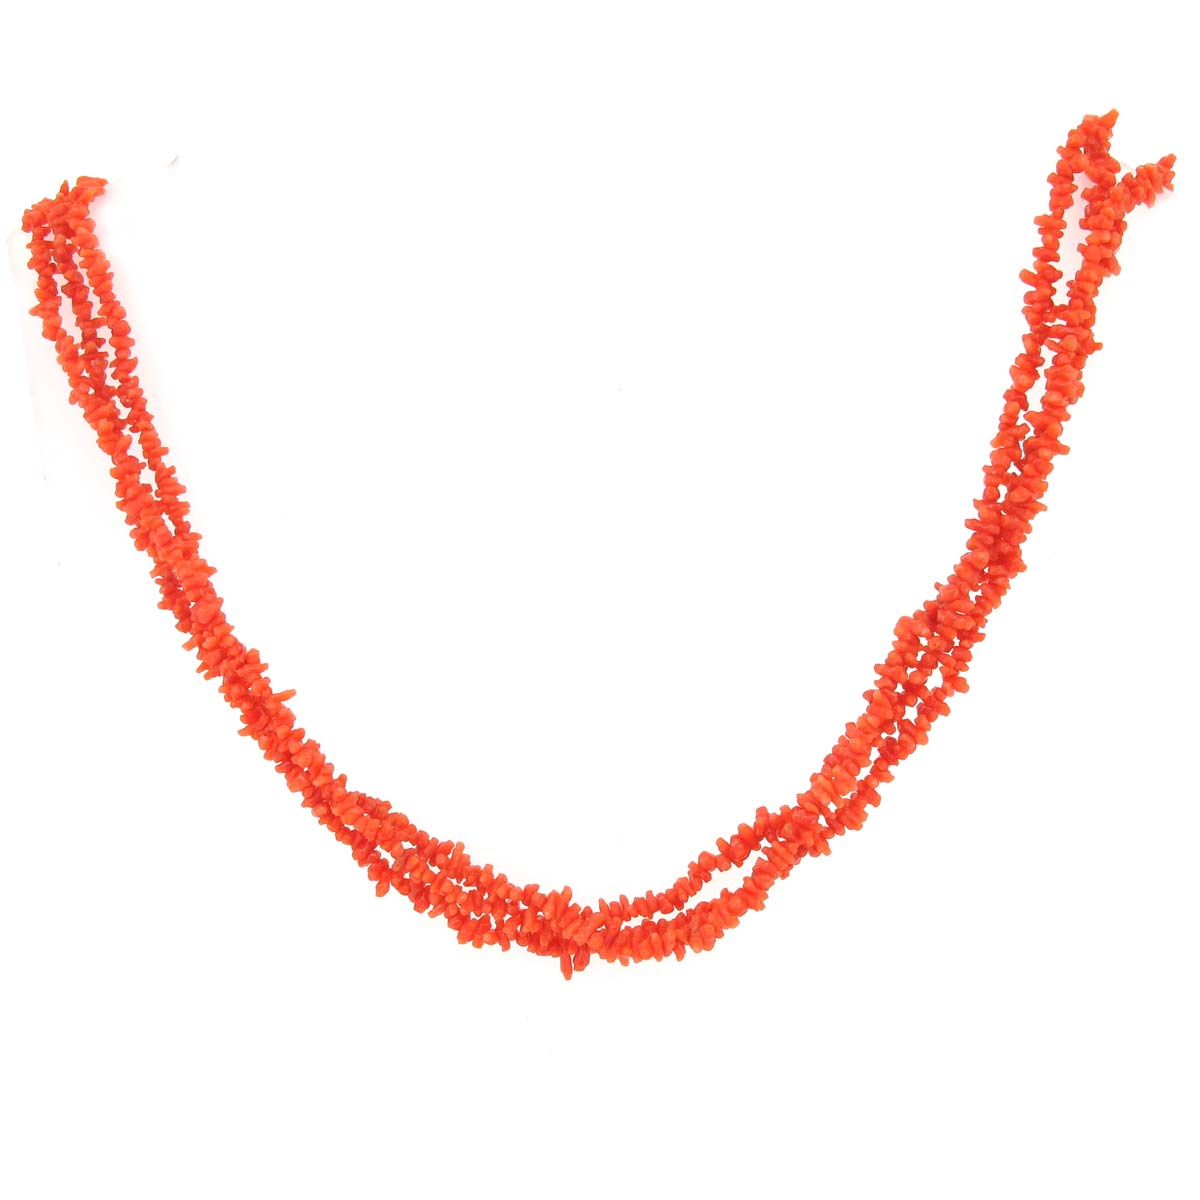 Antique coral multi-string necklace